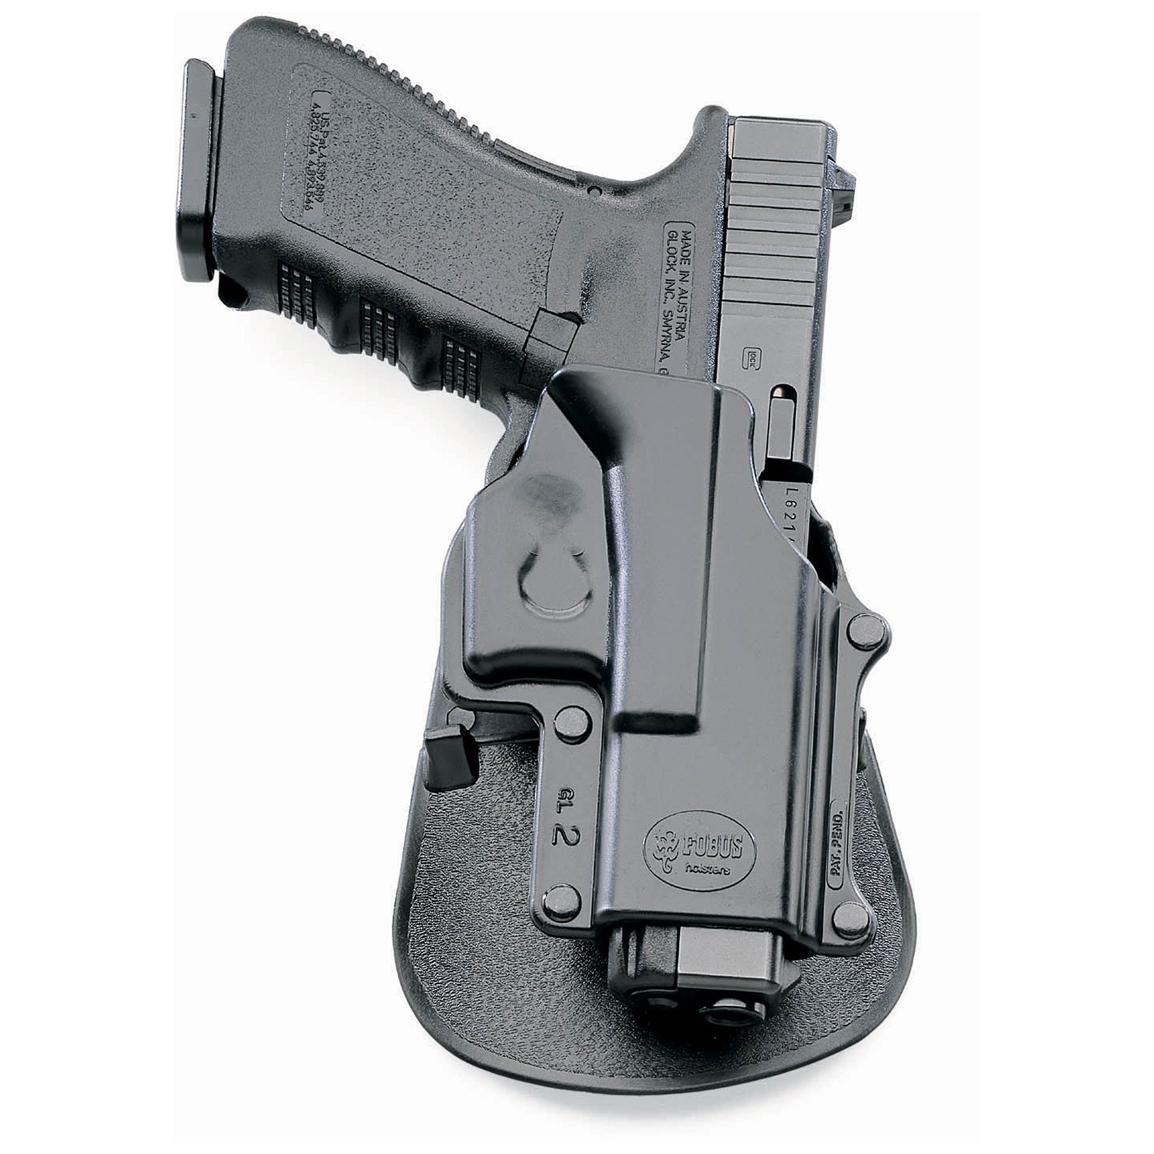 Fobus Glock 17/19/22/23/31/32/34/35 Paddle Holster with Double Mag Pouch, Left Hand